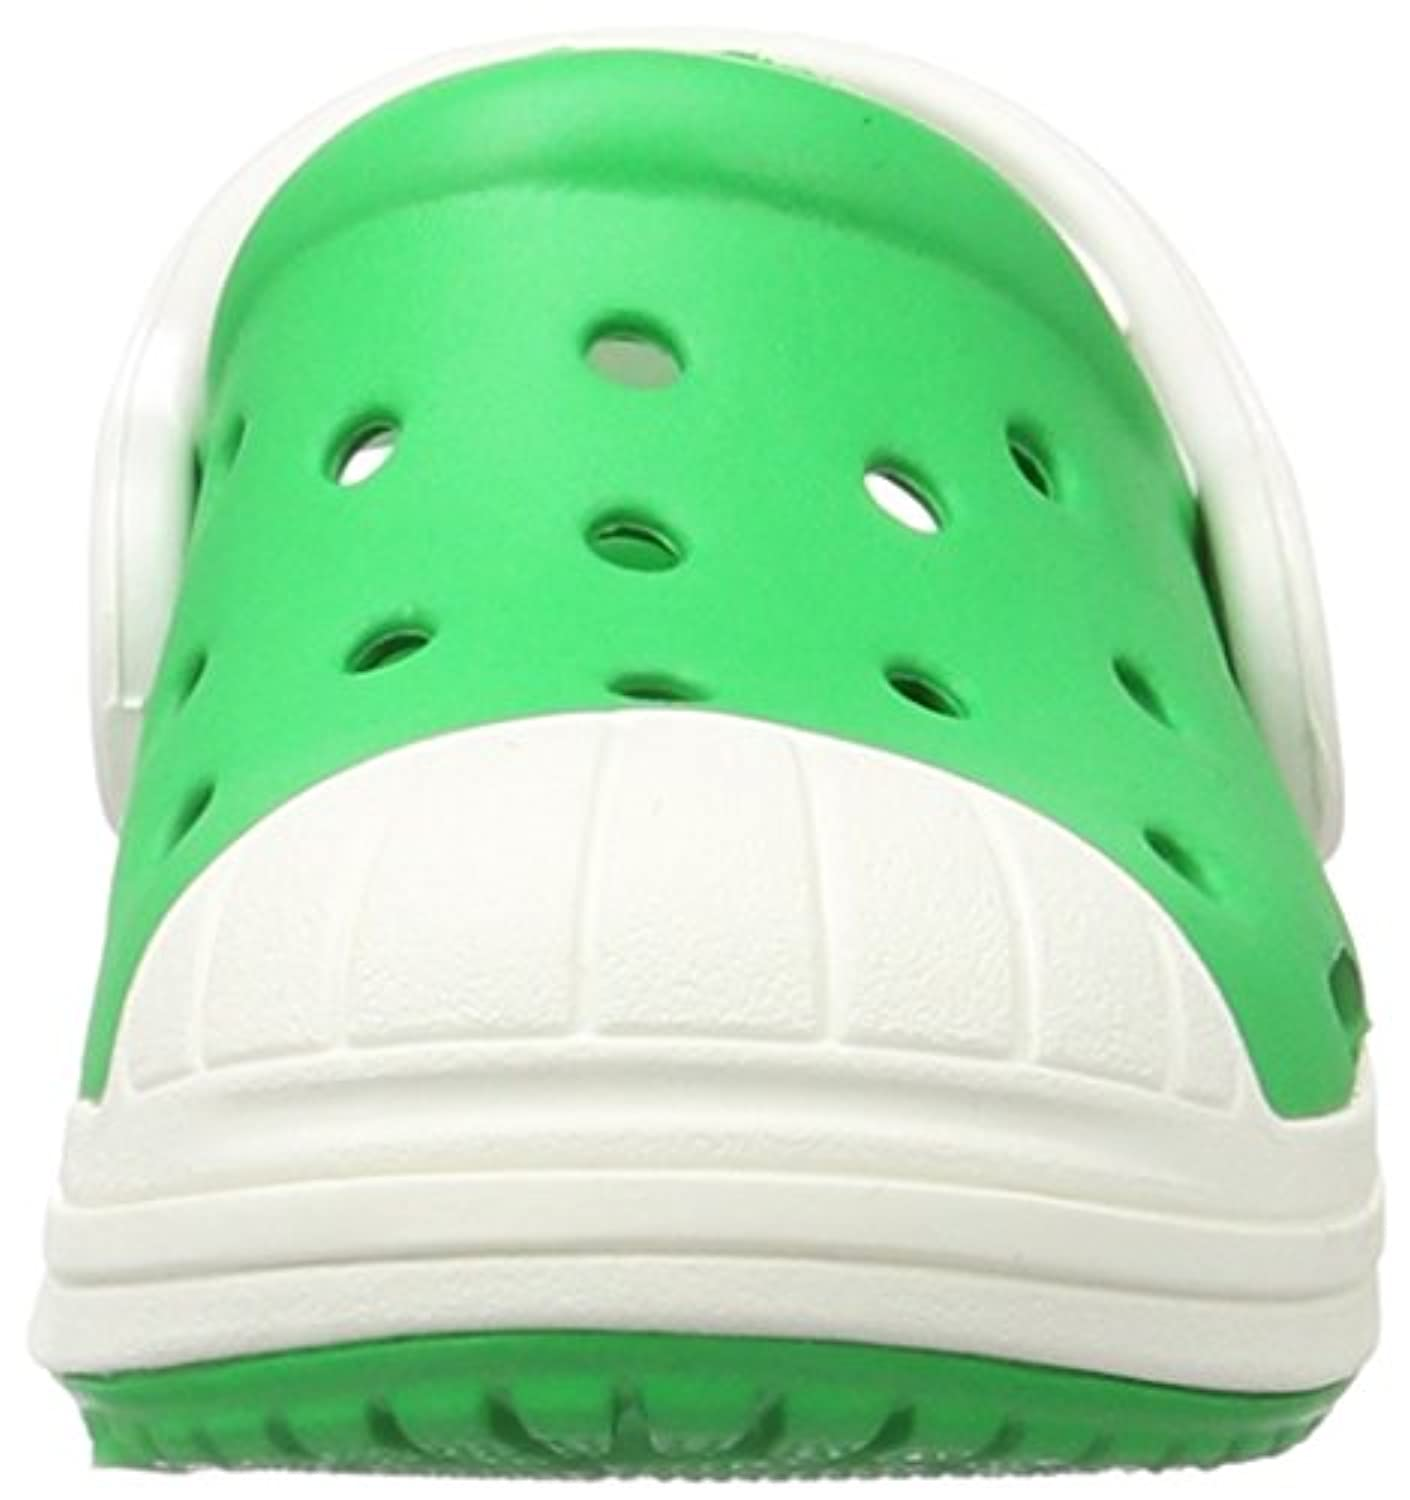 crocs Unisex Kids' Bump It K Clogs, Green (Grass Green/Oyster), 34-35